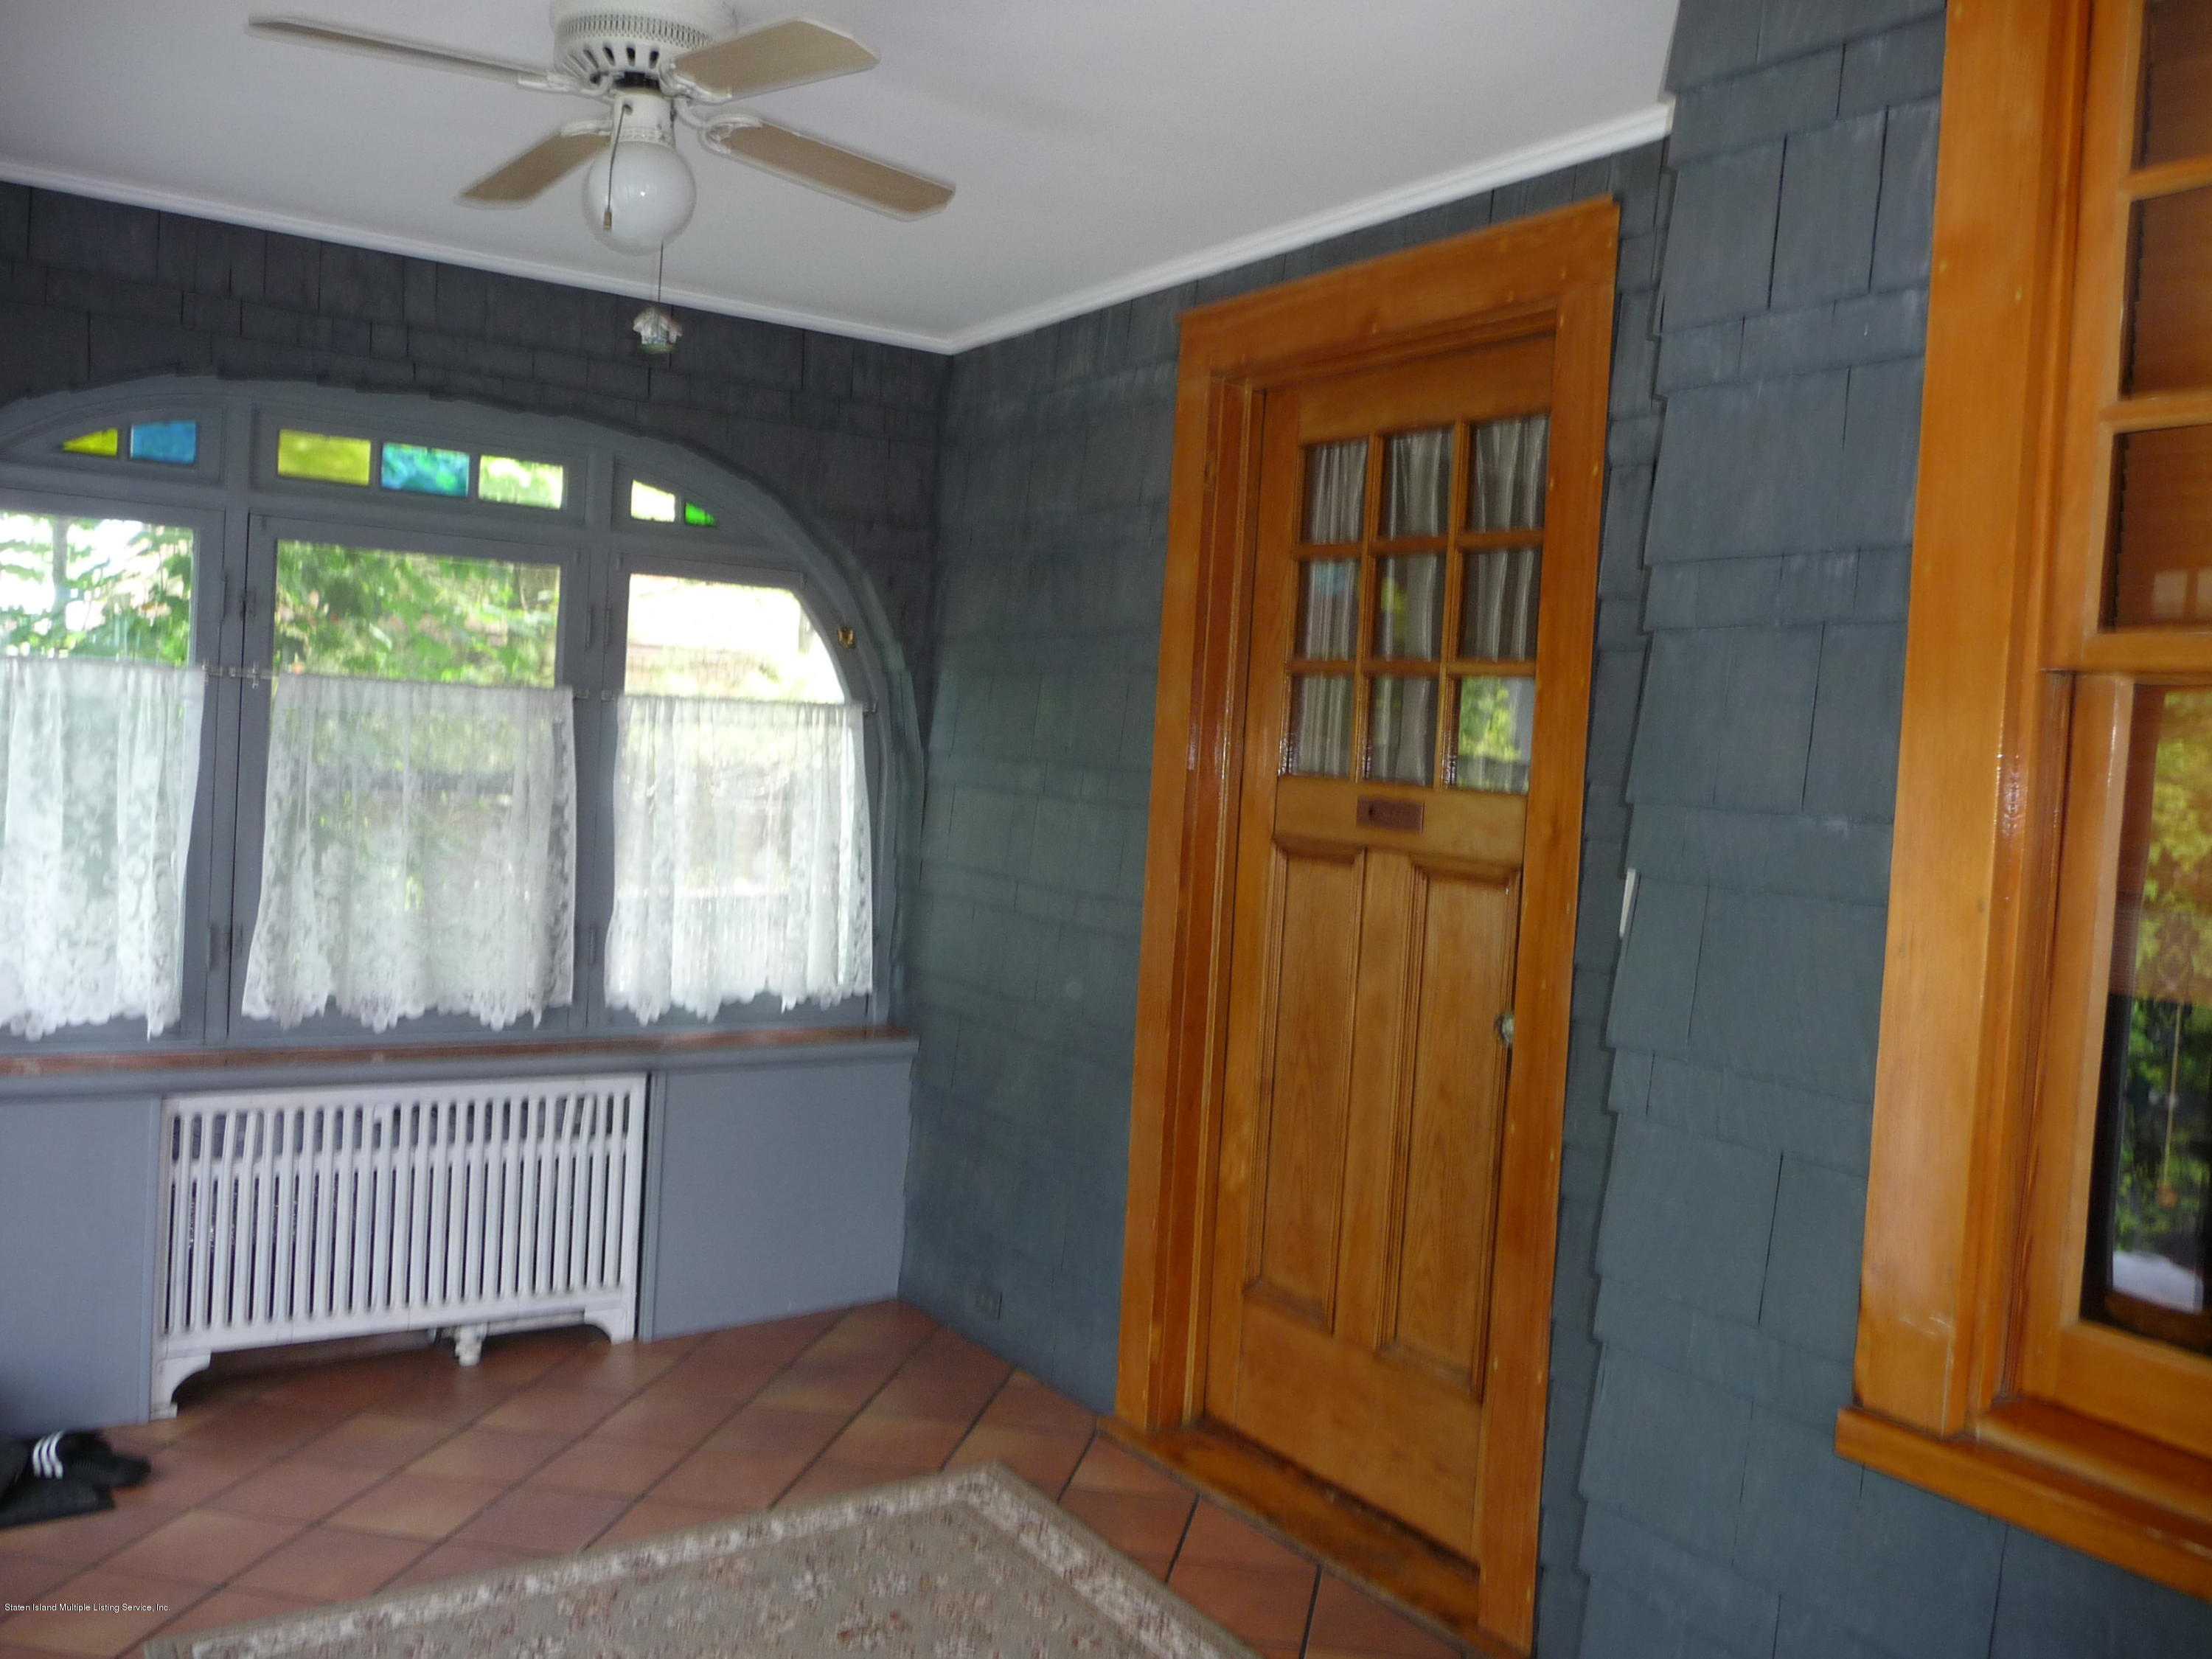 Single Family - Detached 77 Todt Hill Road  Staten Island, NY 10314, MLS-1129718-8